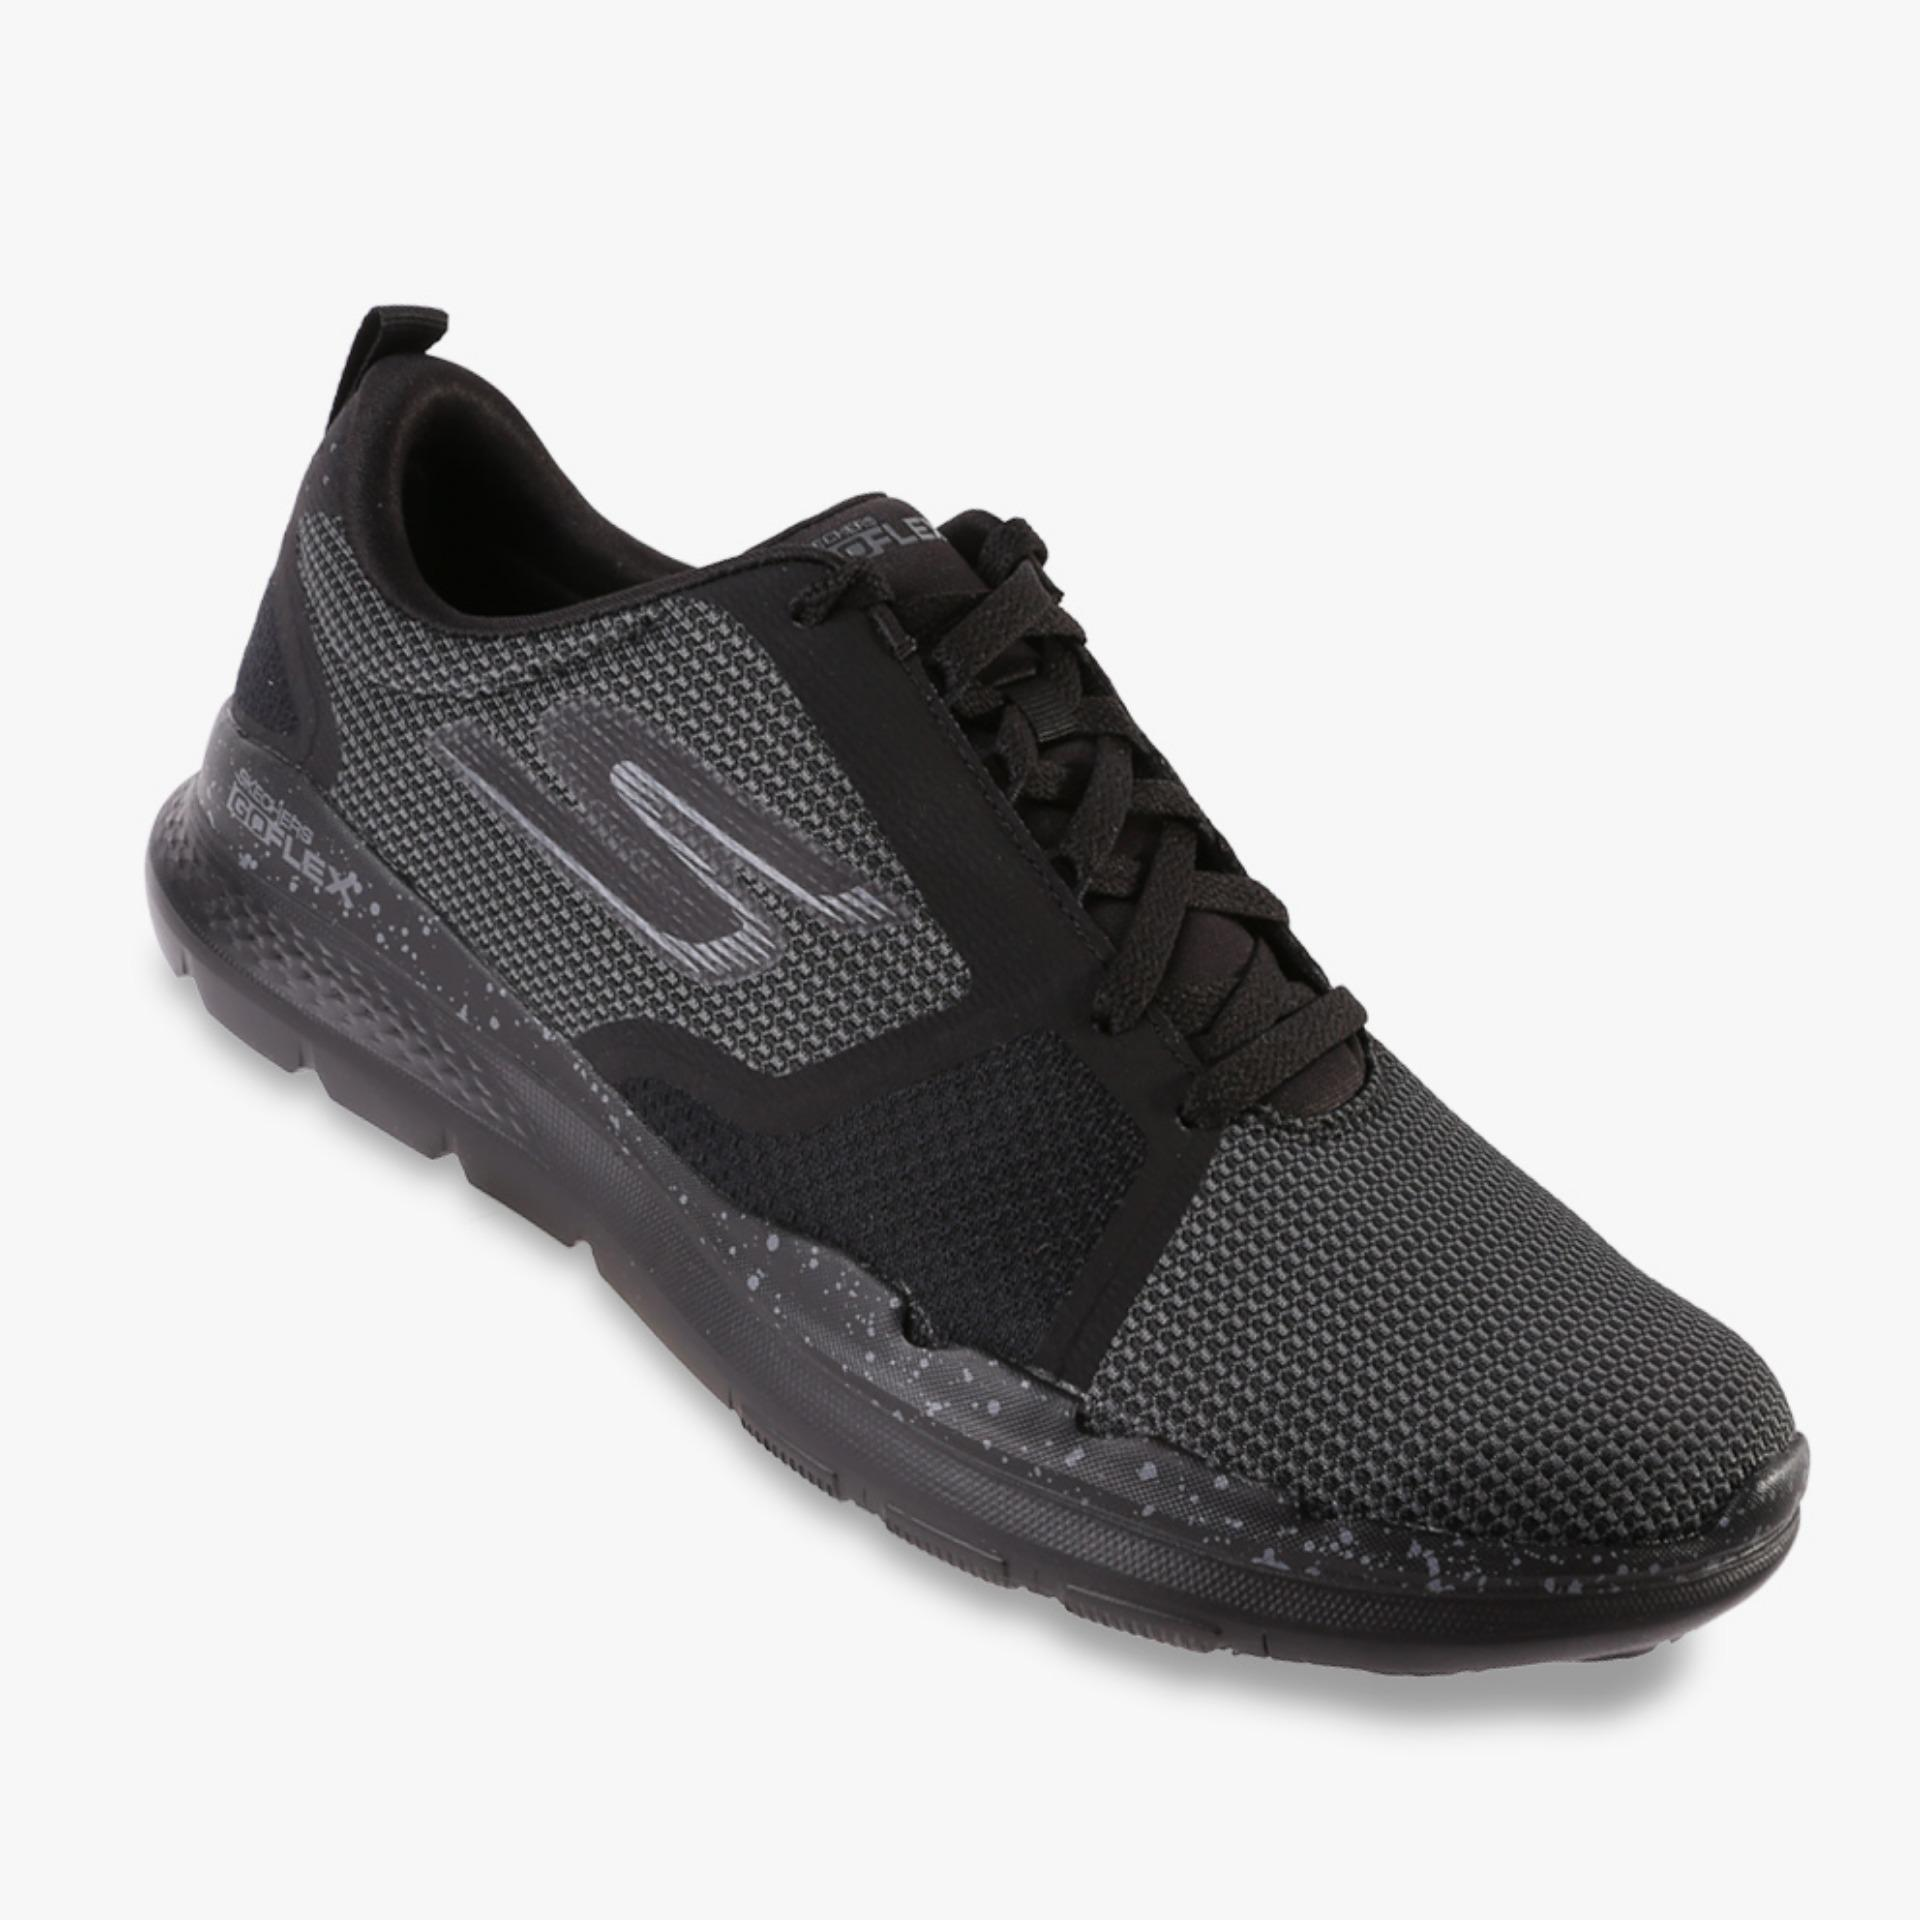 Beli Skechers Go Flex Train Men S Sneakers Hitam Terbaru